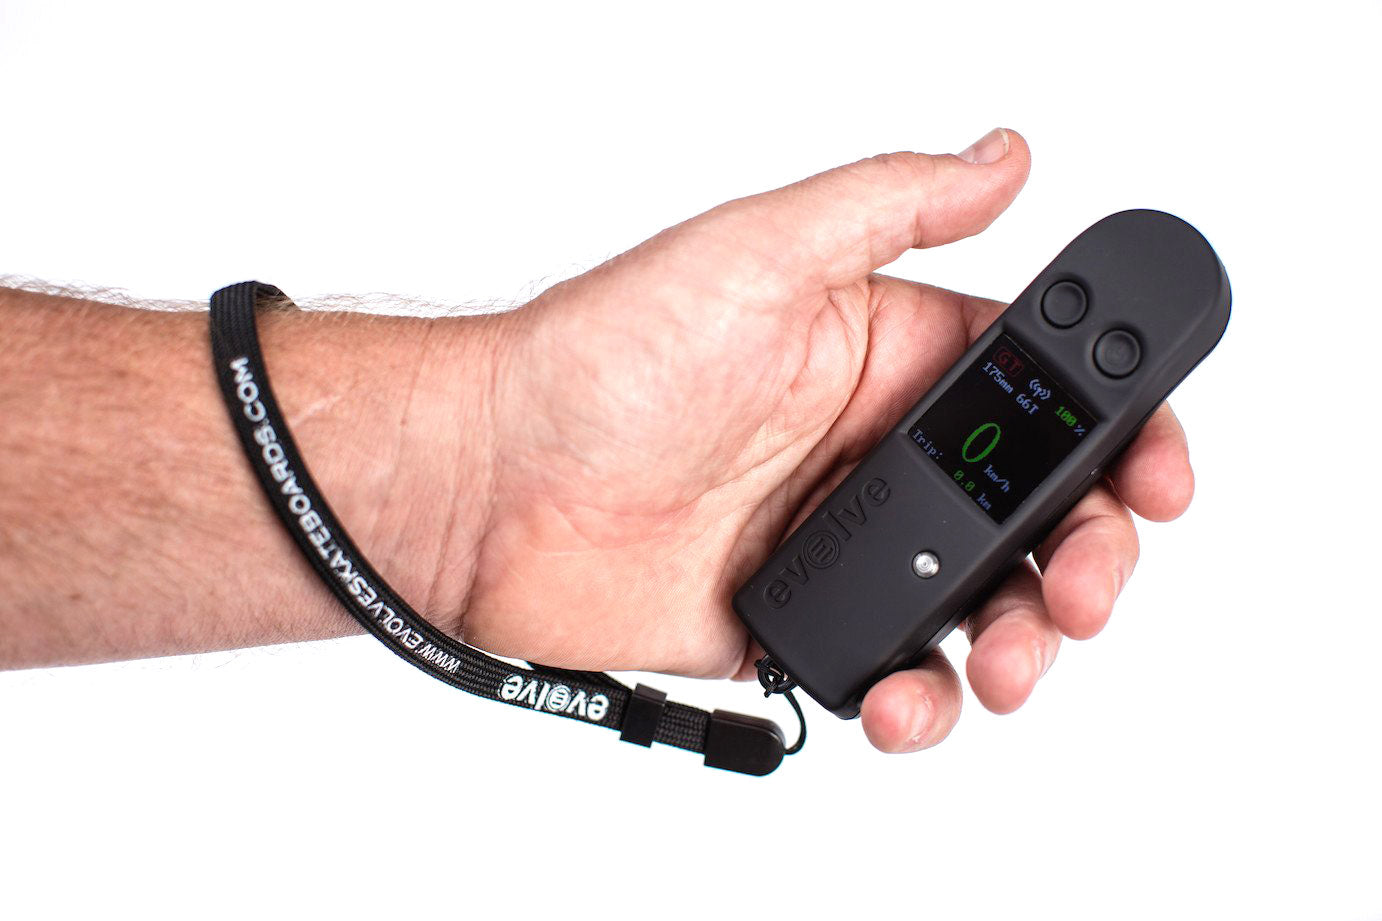 GT Remote with LCD display